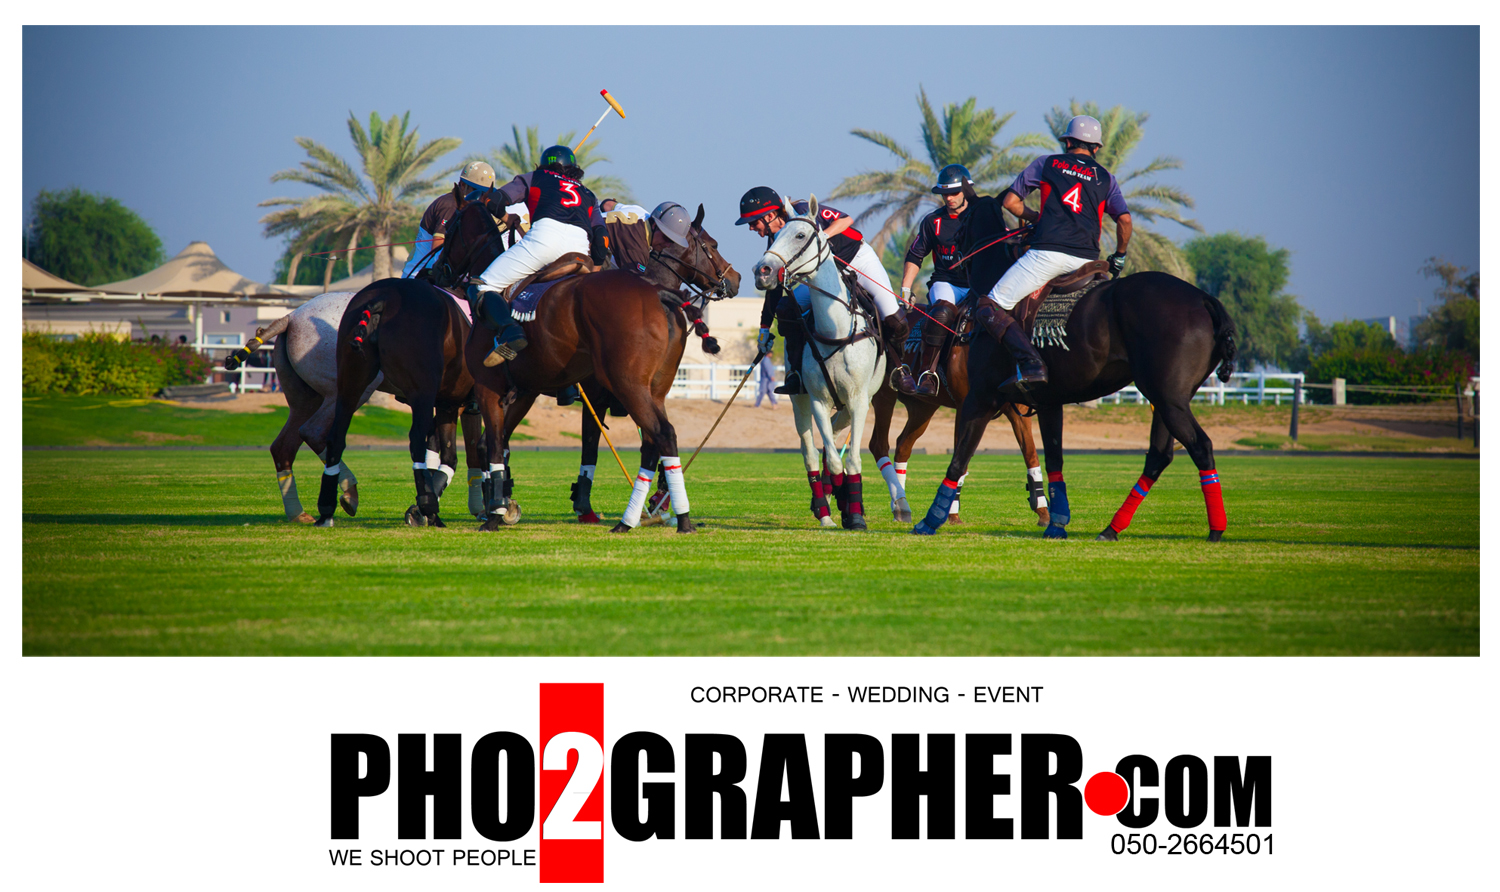 Dubai Sport photographer